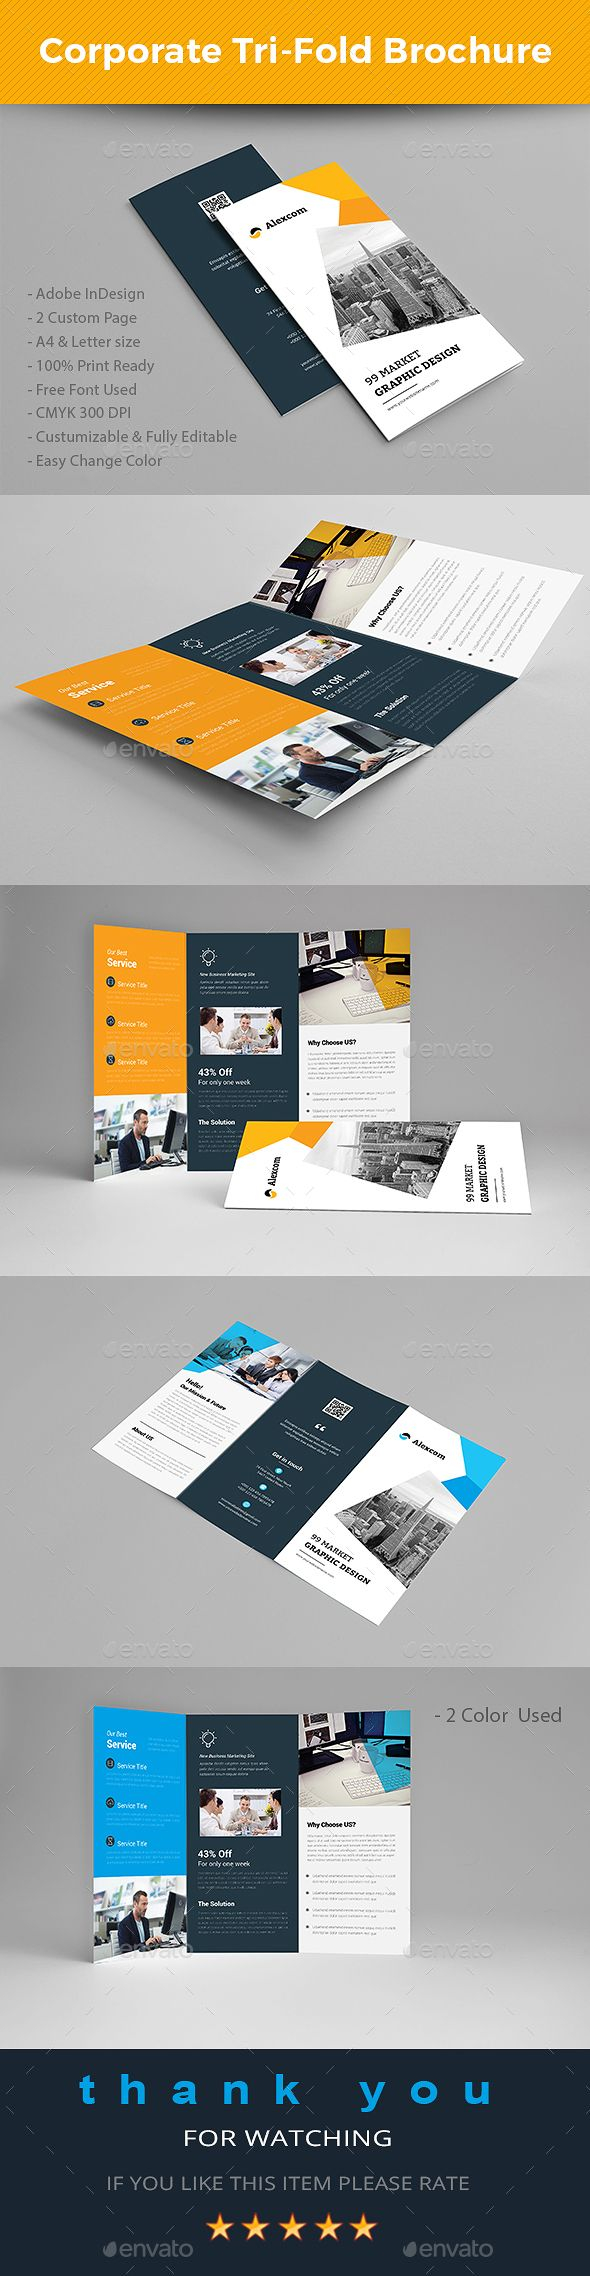 Letter Size Tri Fold Brochure Template - Best 779 Brochure Templates Images On Pinterest